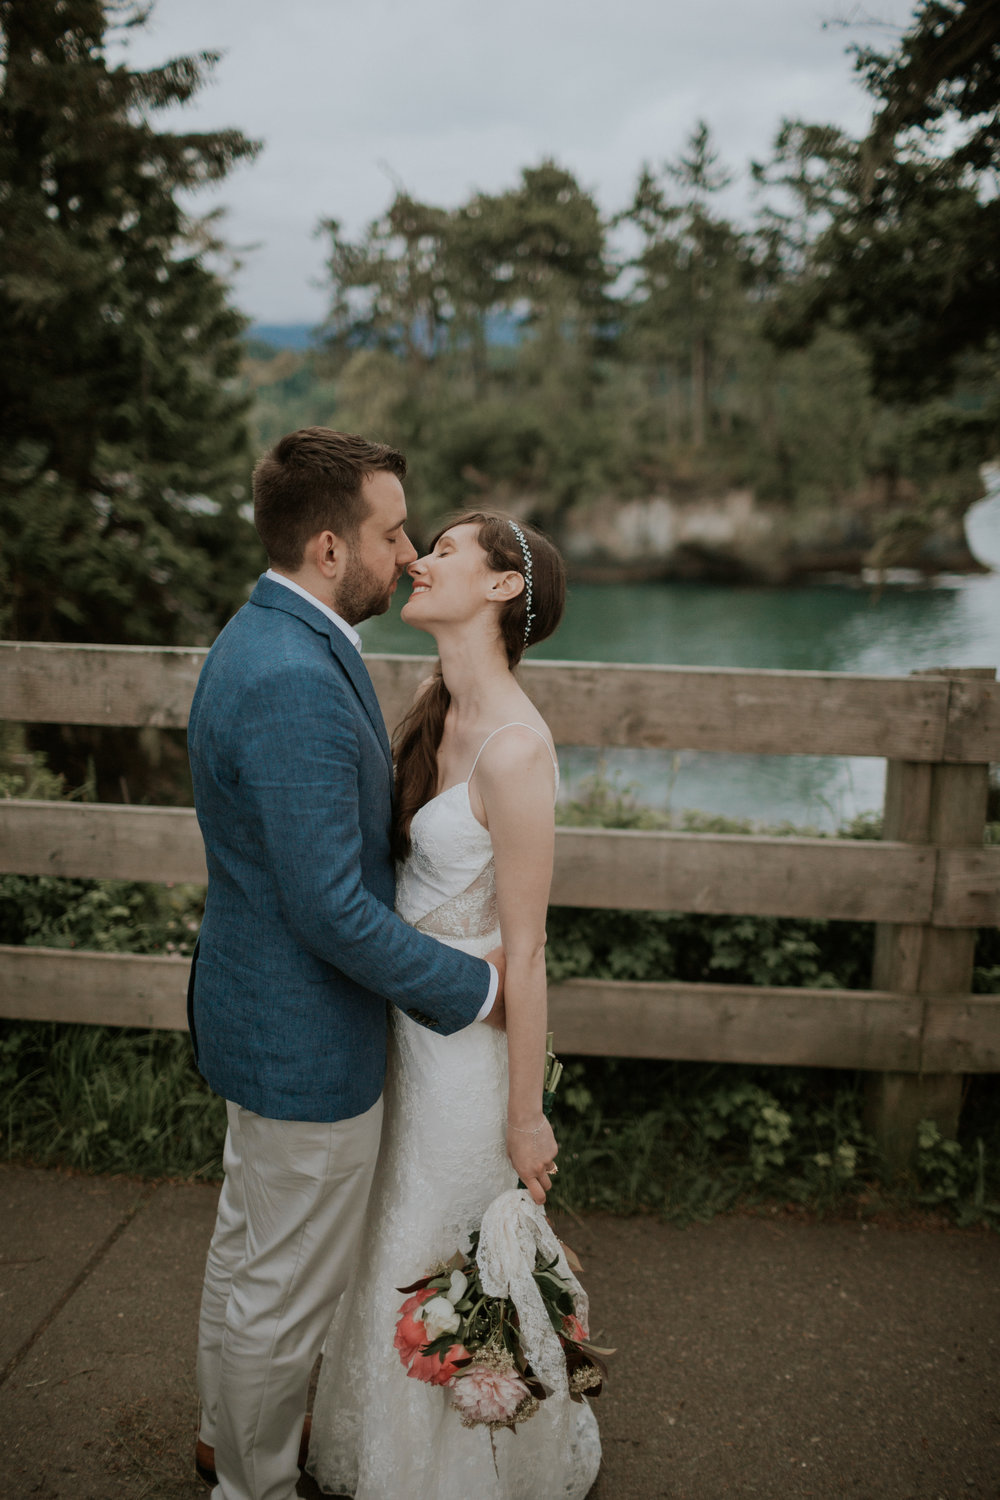 PNW-elopement-wedding-engagement-olympic national park-port angeles-hurricane ridge-lake crescent-kayla dawn photography- photographer-photography-kayladawnphoto-332.jpg